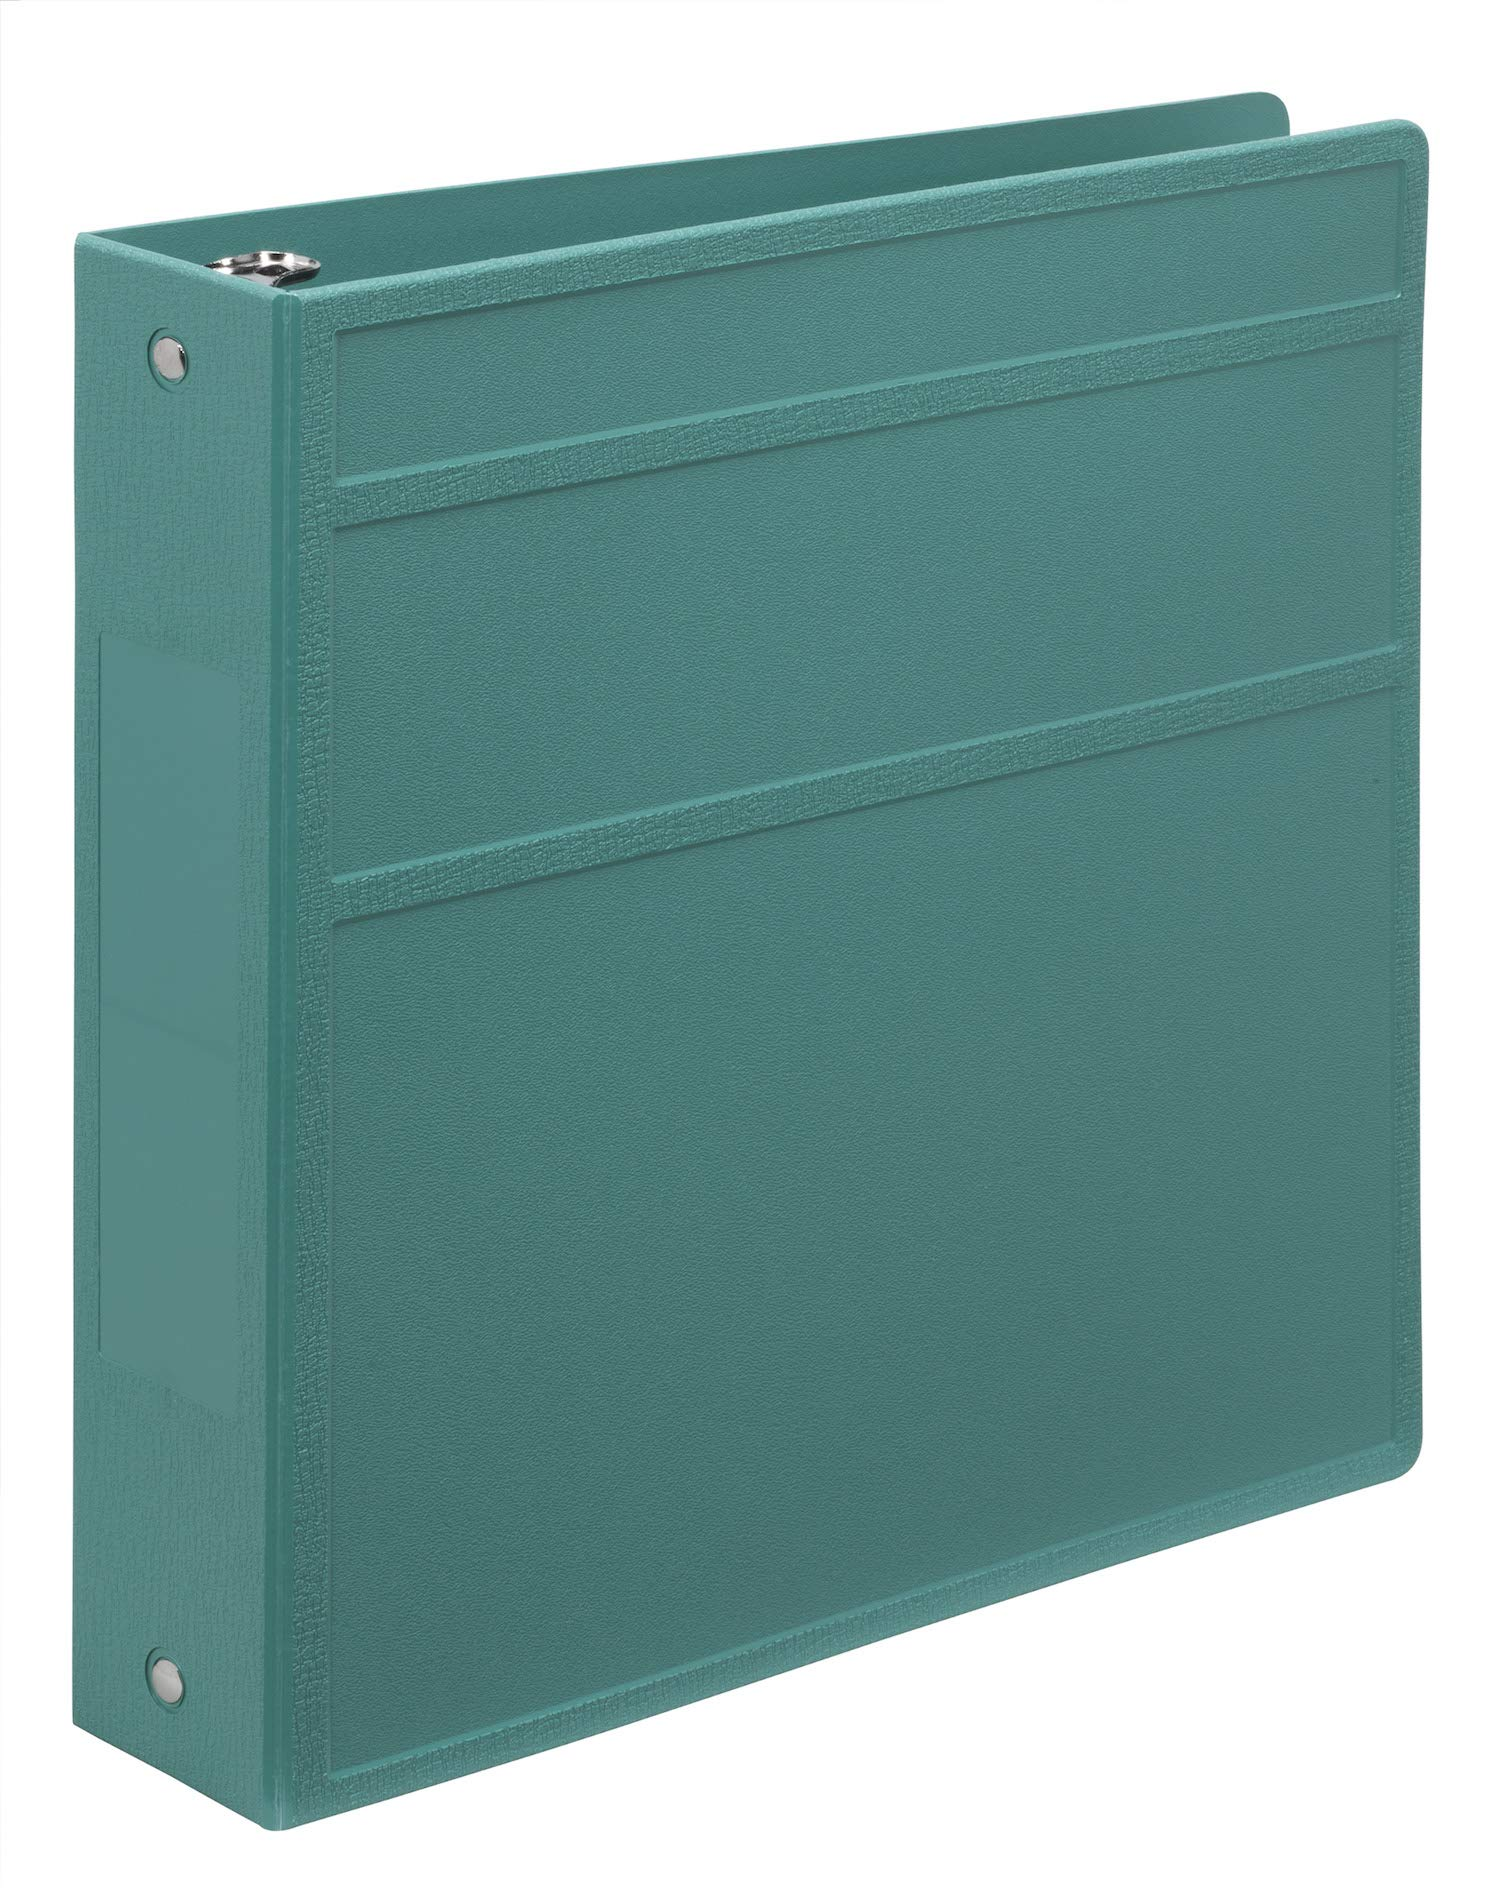 Carstens Heavy-Duty 3-Ring Binder - Side Opening (Teal, 2 Inch)